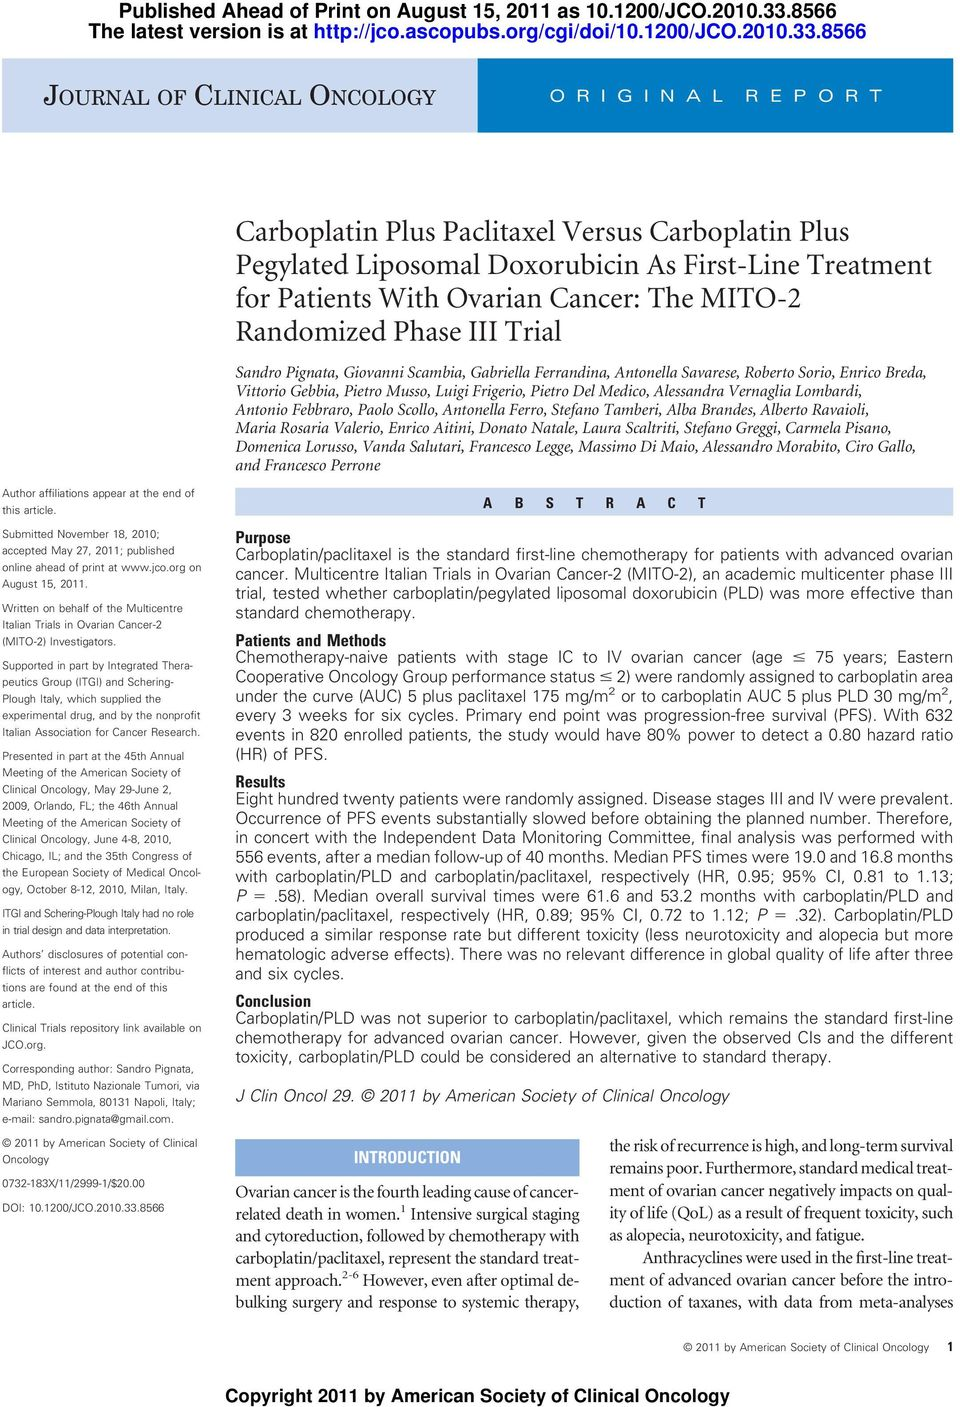 8566 JOURNAL OF CLINICAL ONCOLOGY O R I G I N A L R E P O R T Carboplatin Plus Paclitaxel Versus Carboplatin Plus Pegylated Liposomal Doxorubicin As First-Line Treatment for Patients With Ovarian